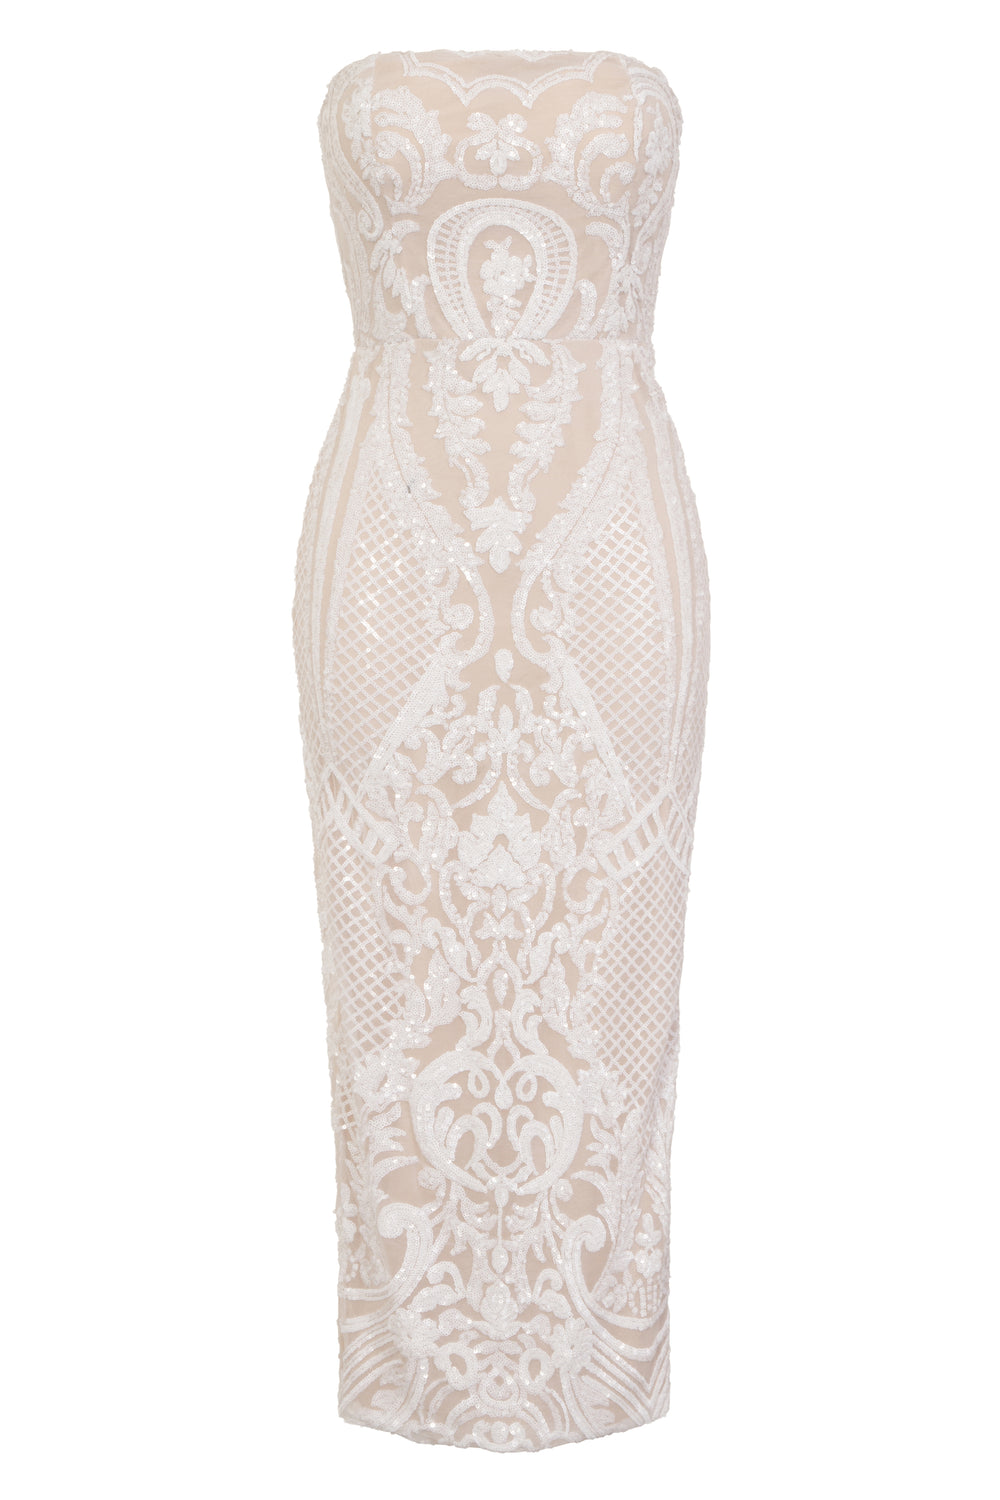 Vogue Luxe White Nude Strapless Sequin Illusion Midi Pencil Dress